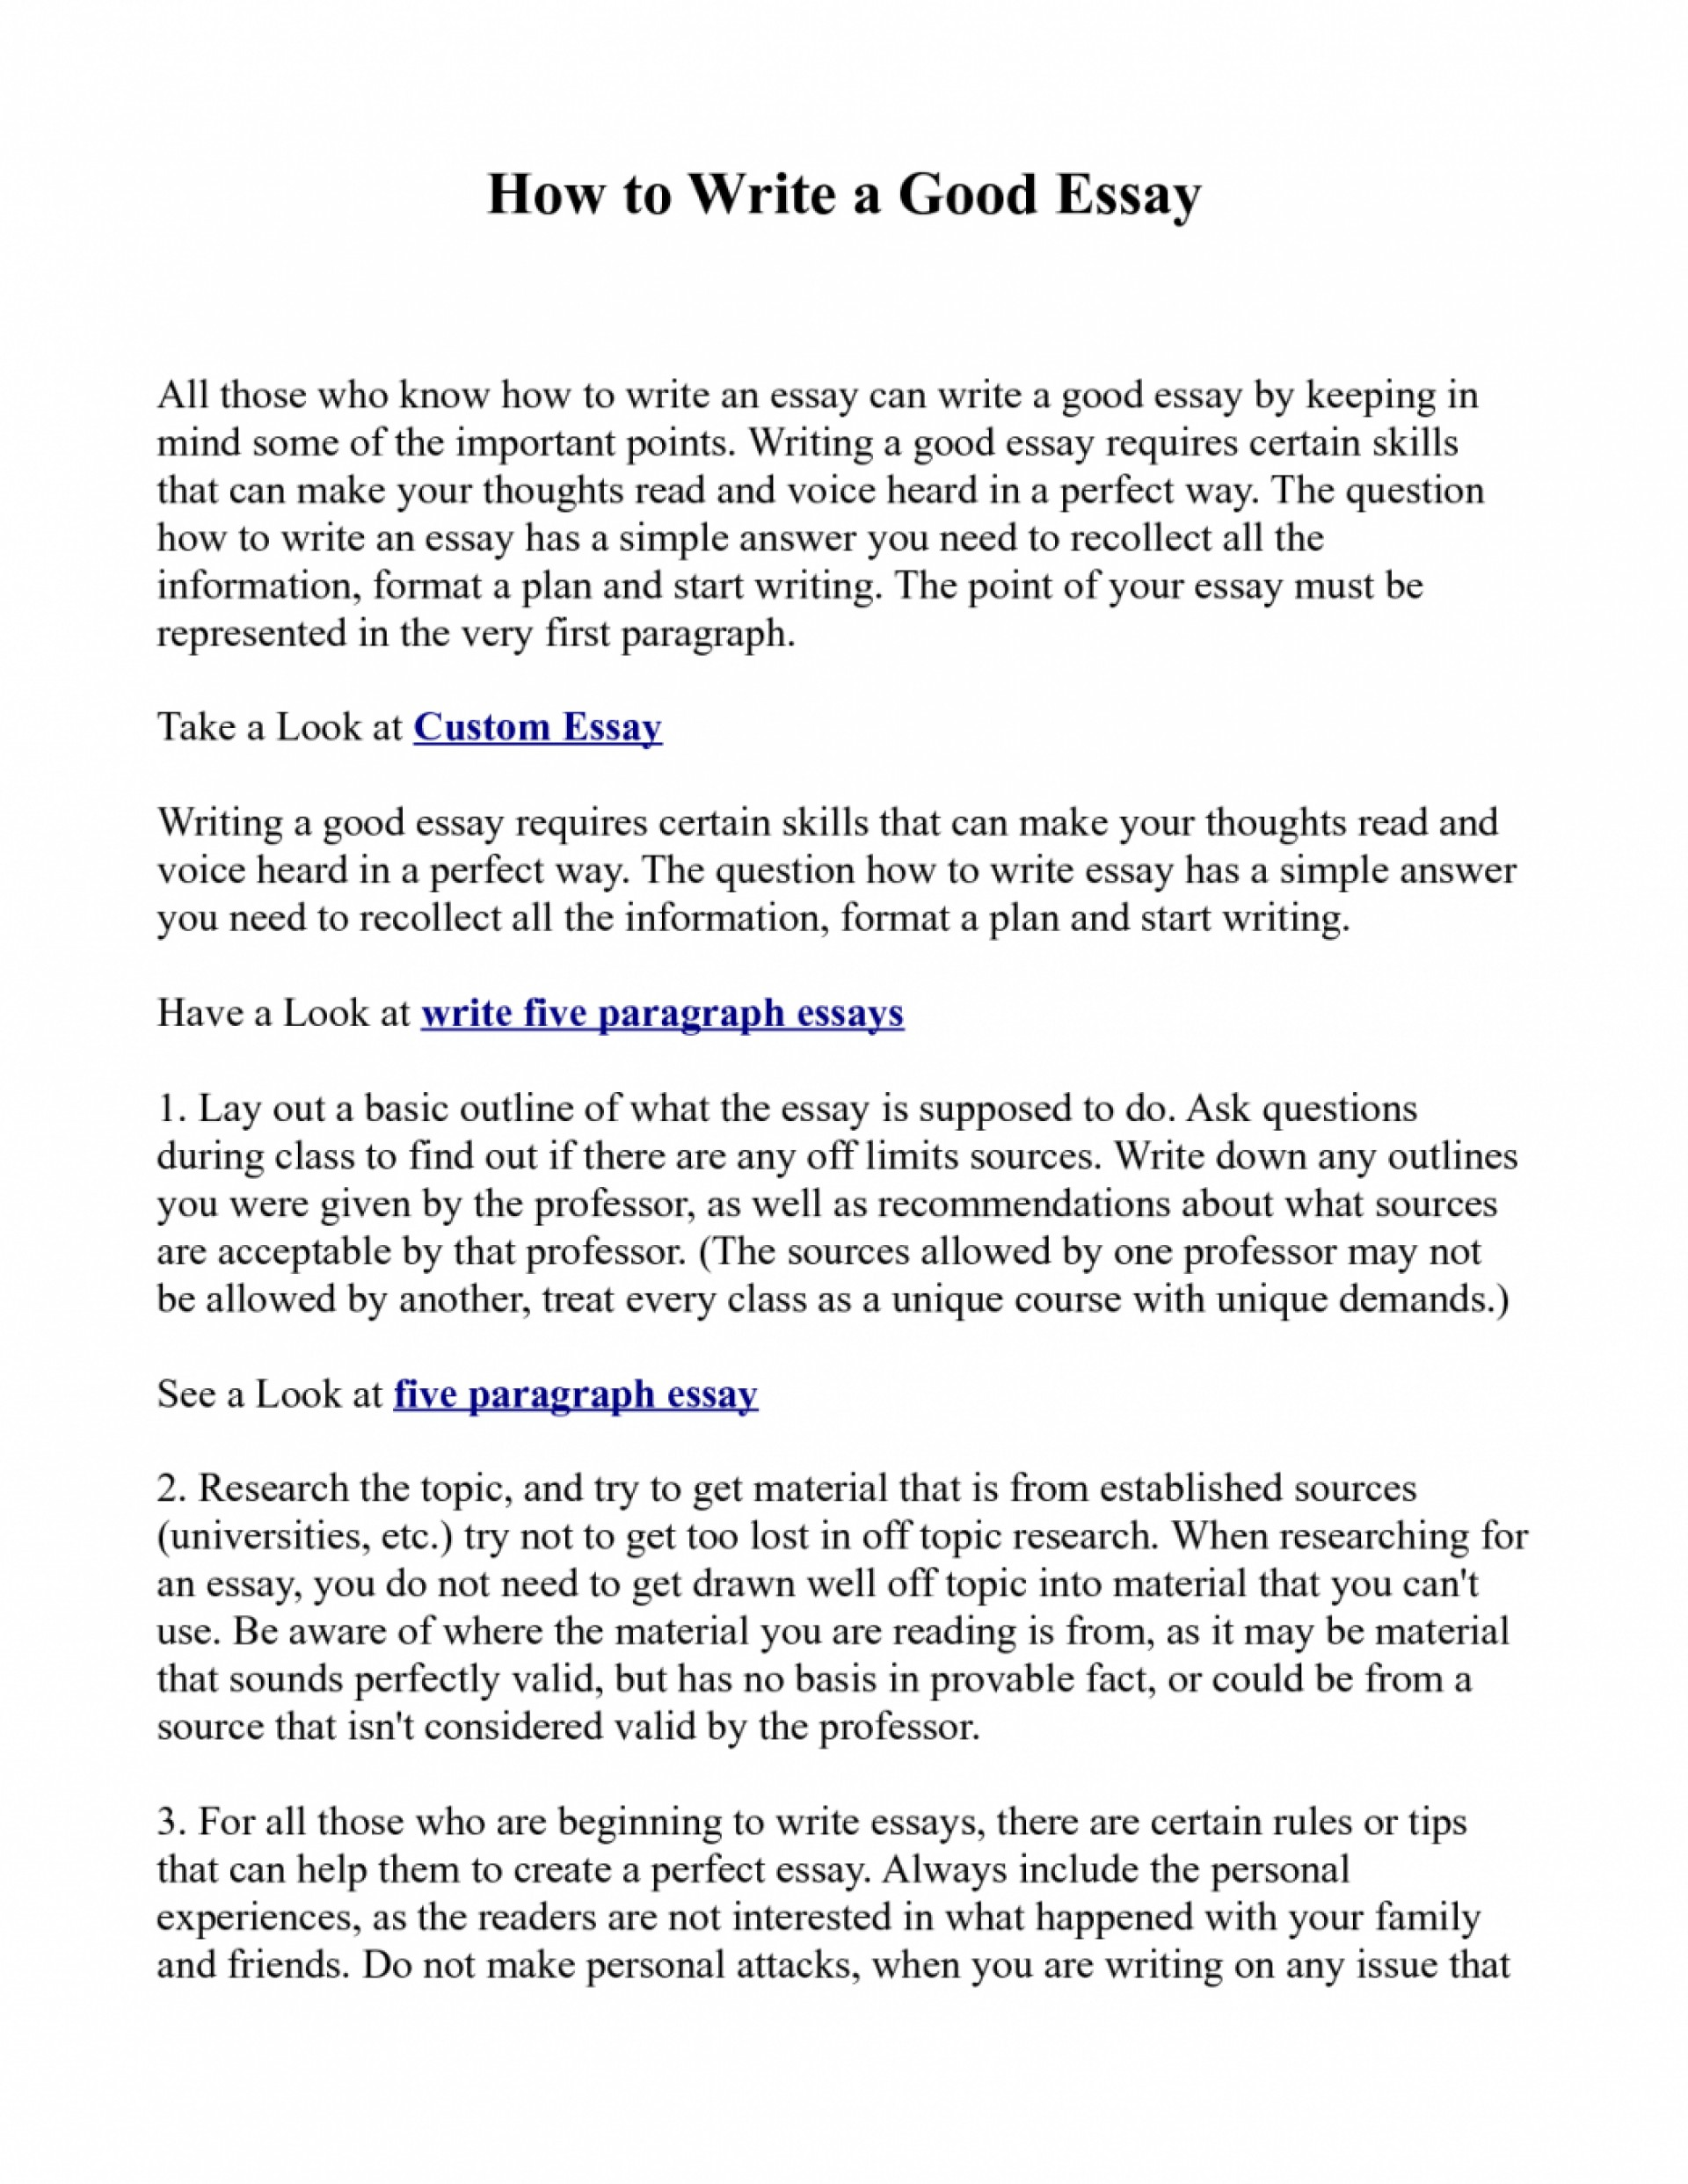 001 How To Type An Essay Of Essays Writing Write Excellent The Perfect Types Slideshare Ex1id Ppt Pdf Withs In Hindi Wikipedia Task 1048x1356 Awesome Fast A One Page Paper Apa Format Mla On Mac 1920